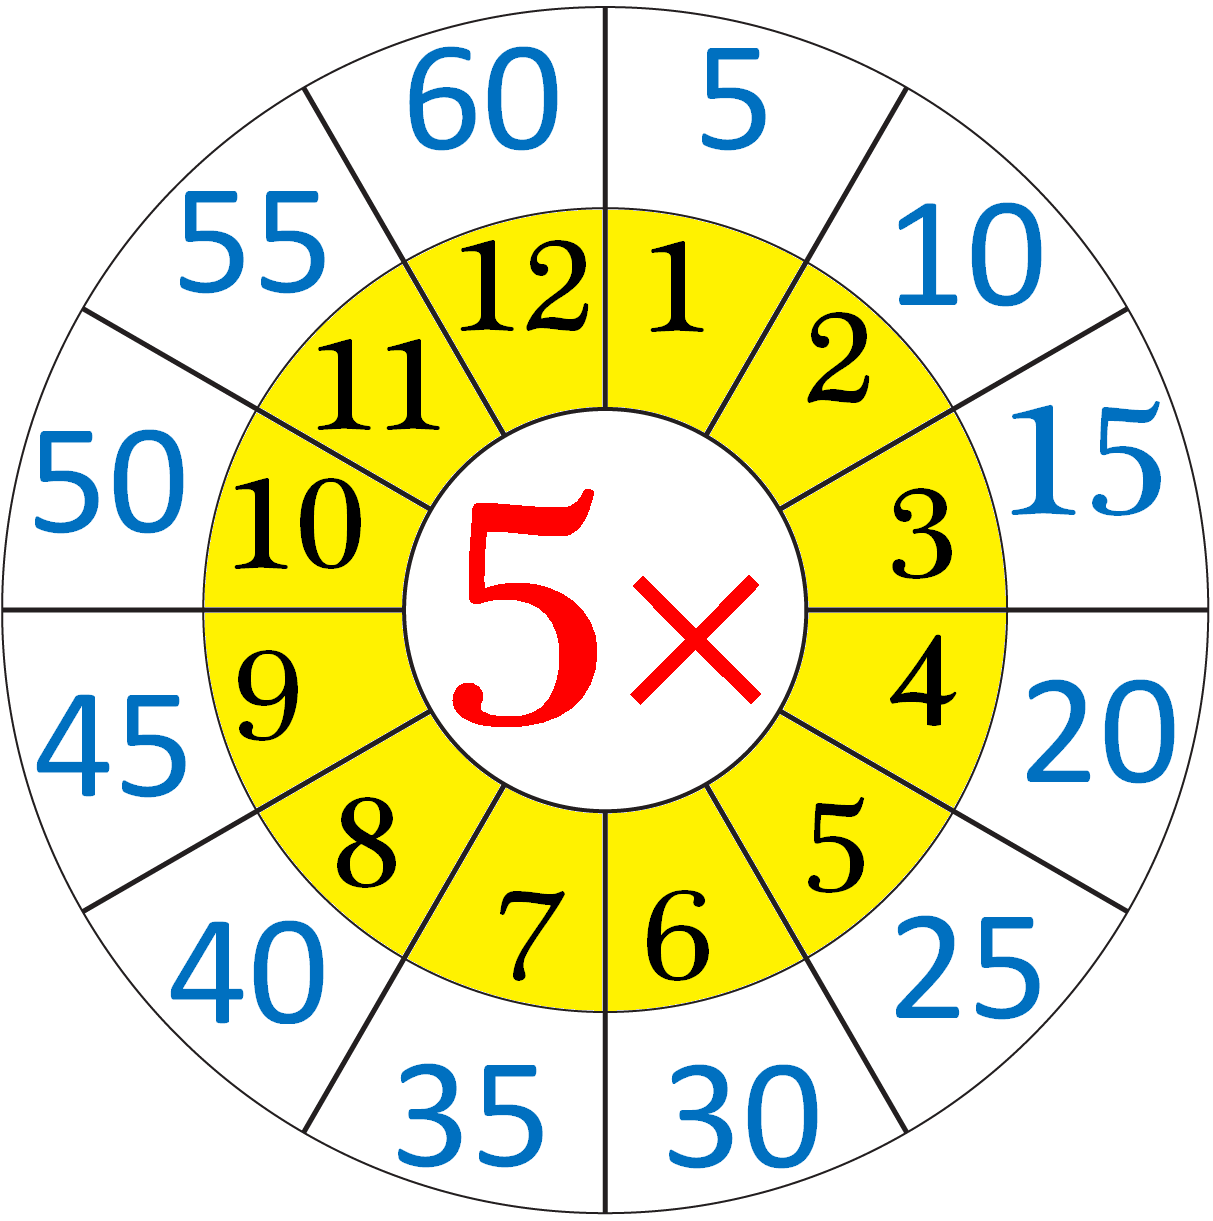 Multiplication Table of Five